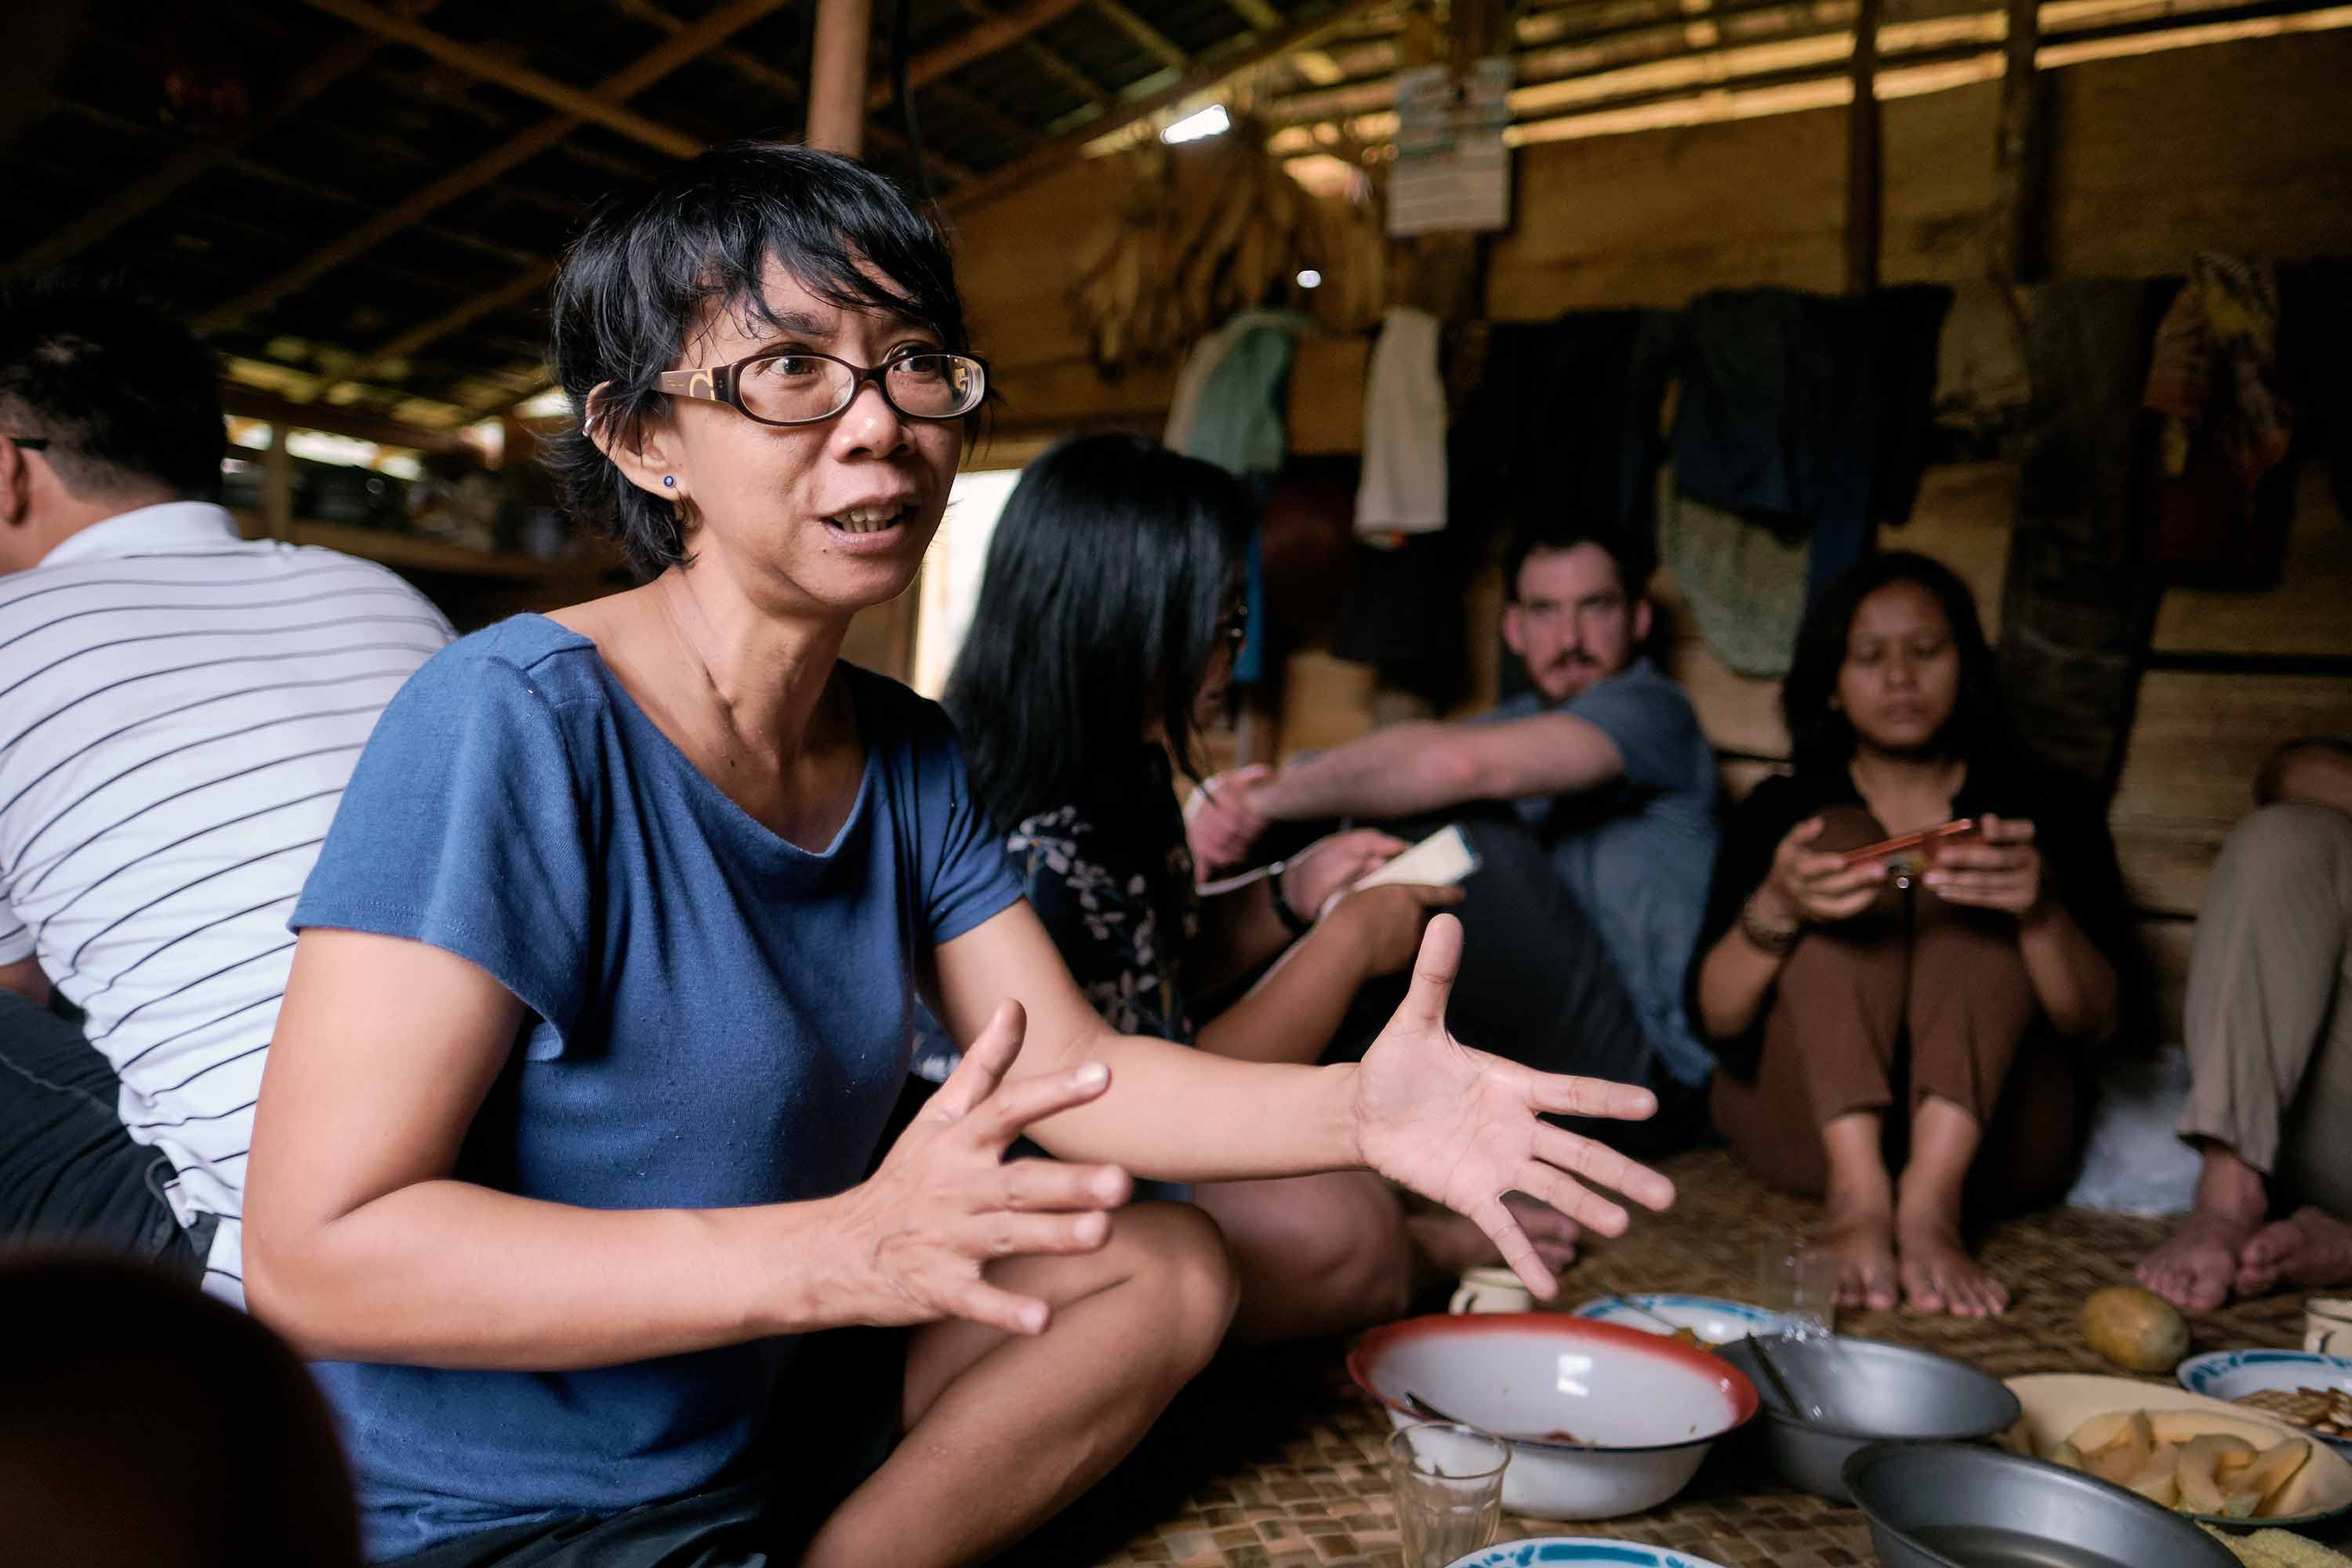 A woman with short black hair and blue shirt extends her hand in gesture while sitting on the floor of a longhouse surrounded by plates of food.